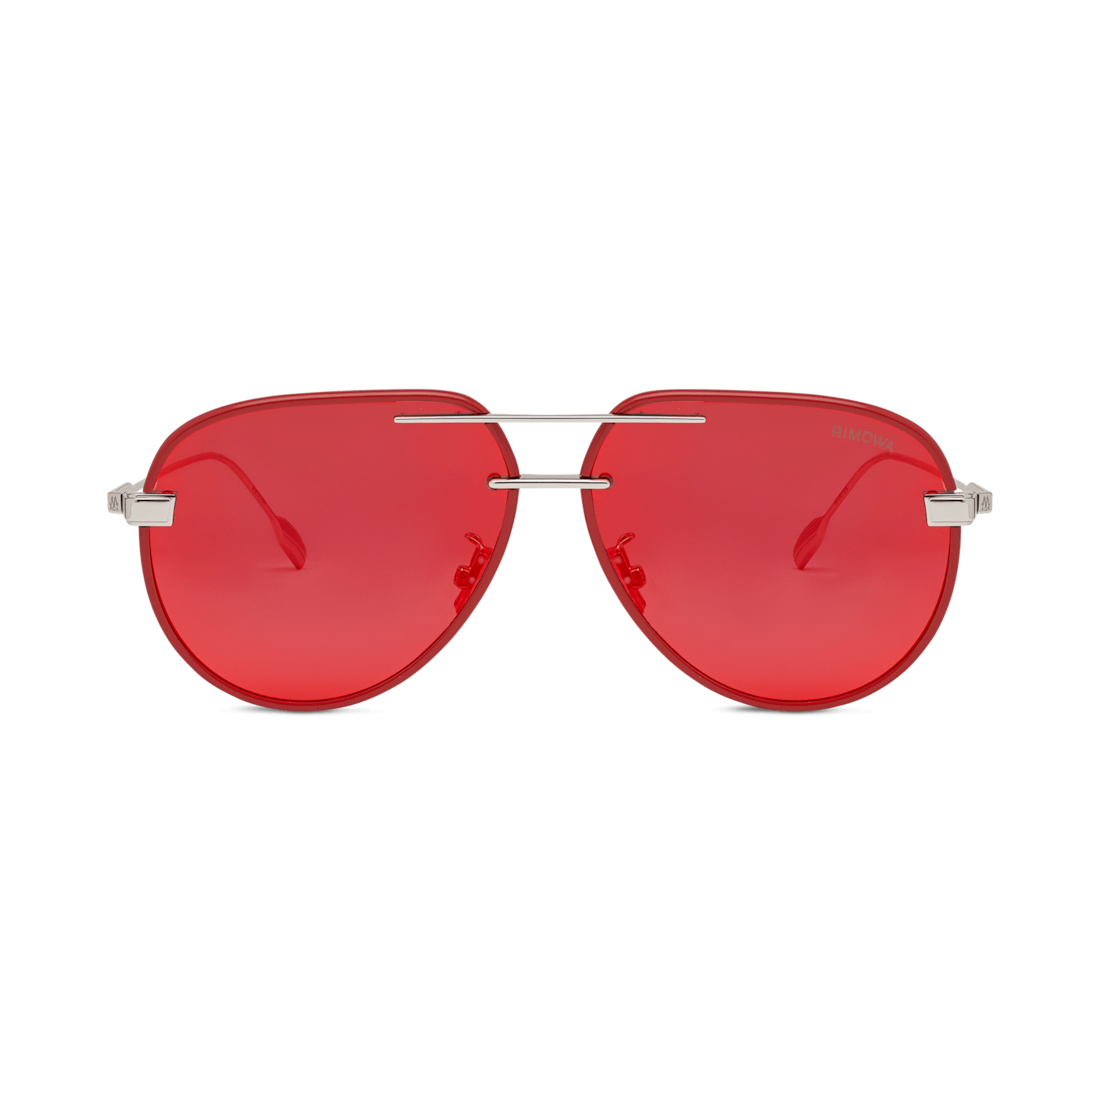 Pilot Red Mirror Sunglasses